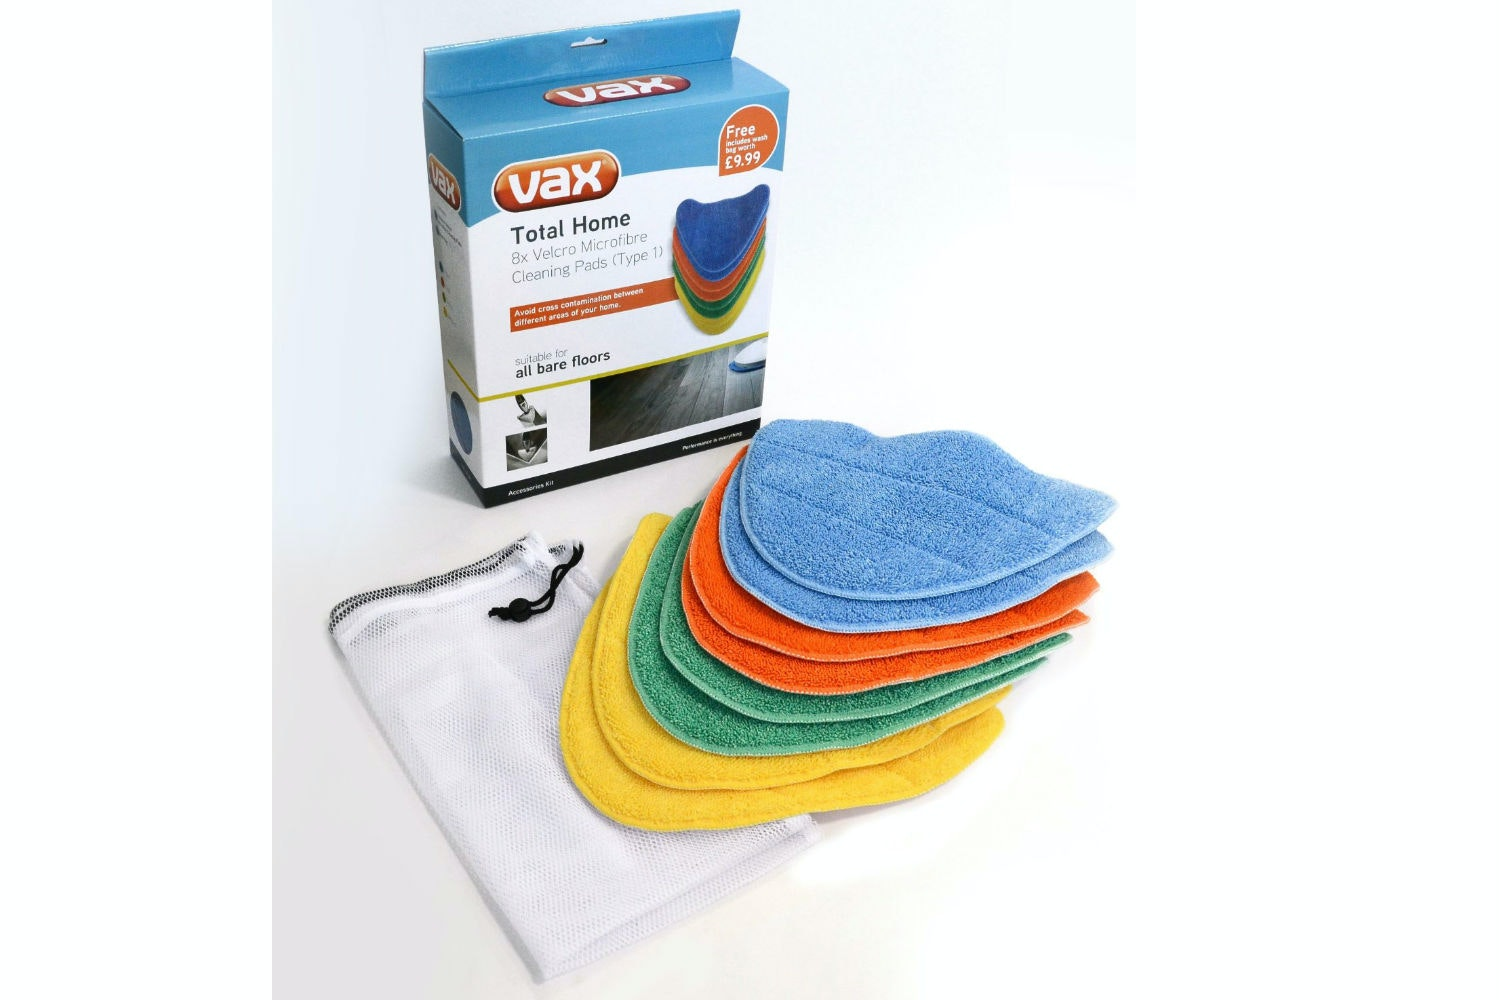 Vax Total Home Microfibre Cleaning Pads